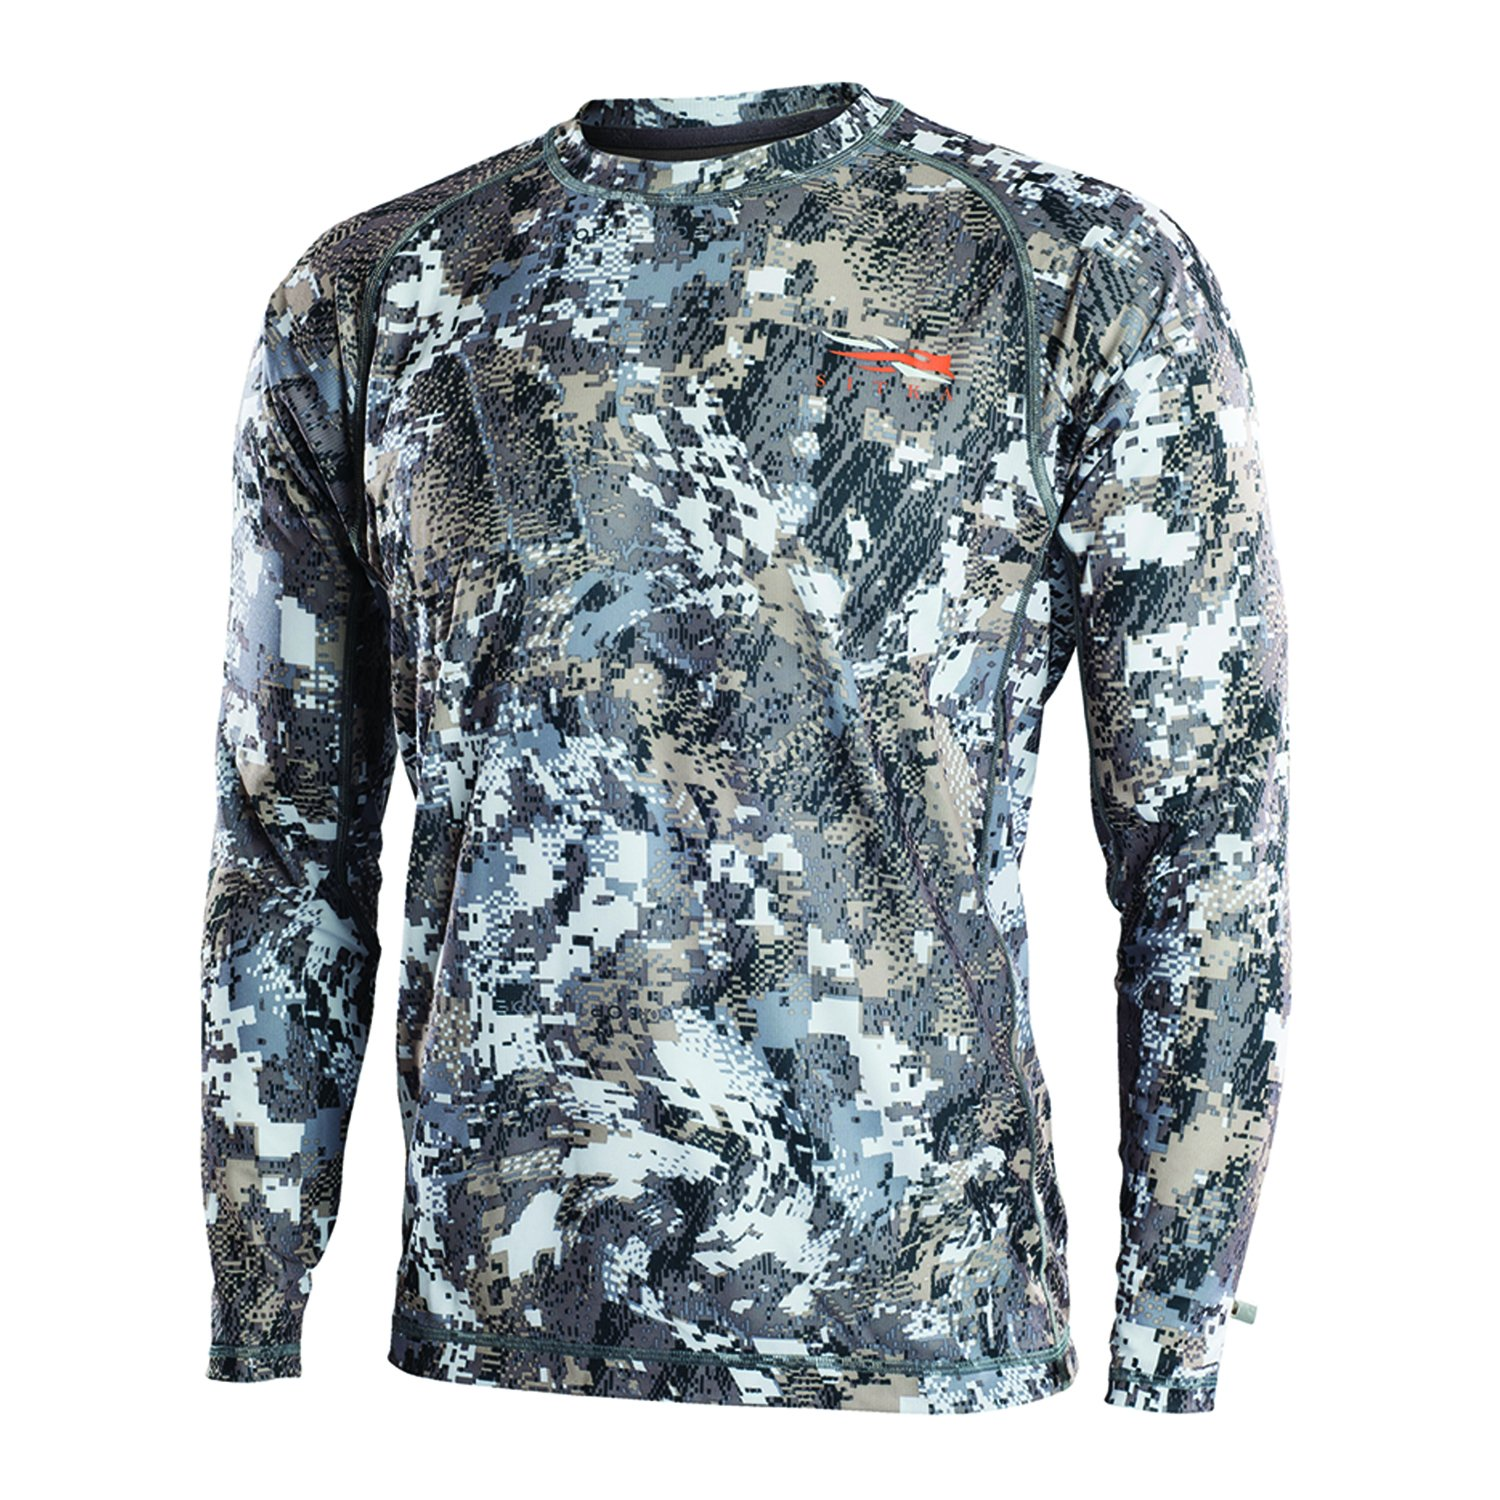 SITKA Gear Core Light Weight Crew - Long Sleeve Optifade Elevated II Small by SITKA